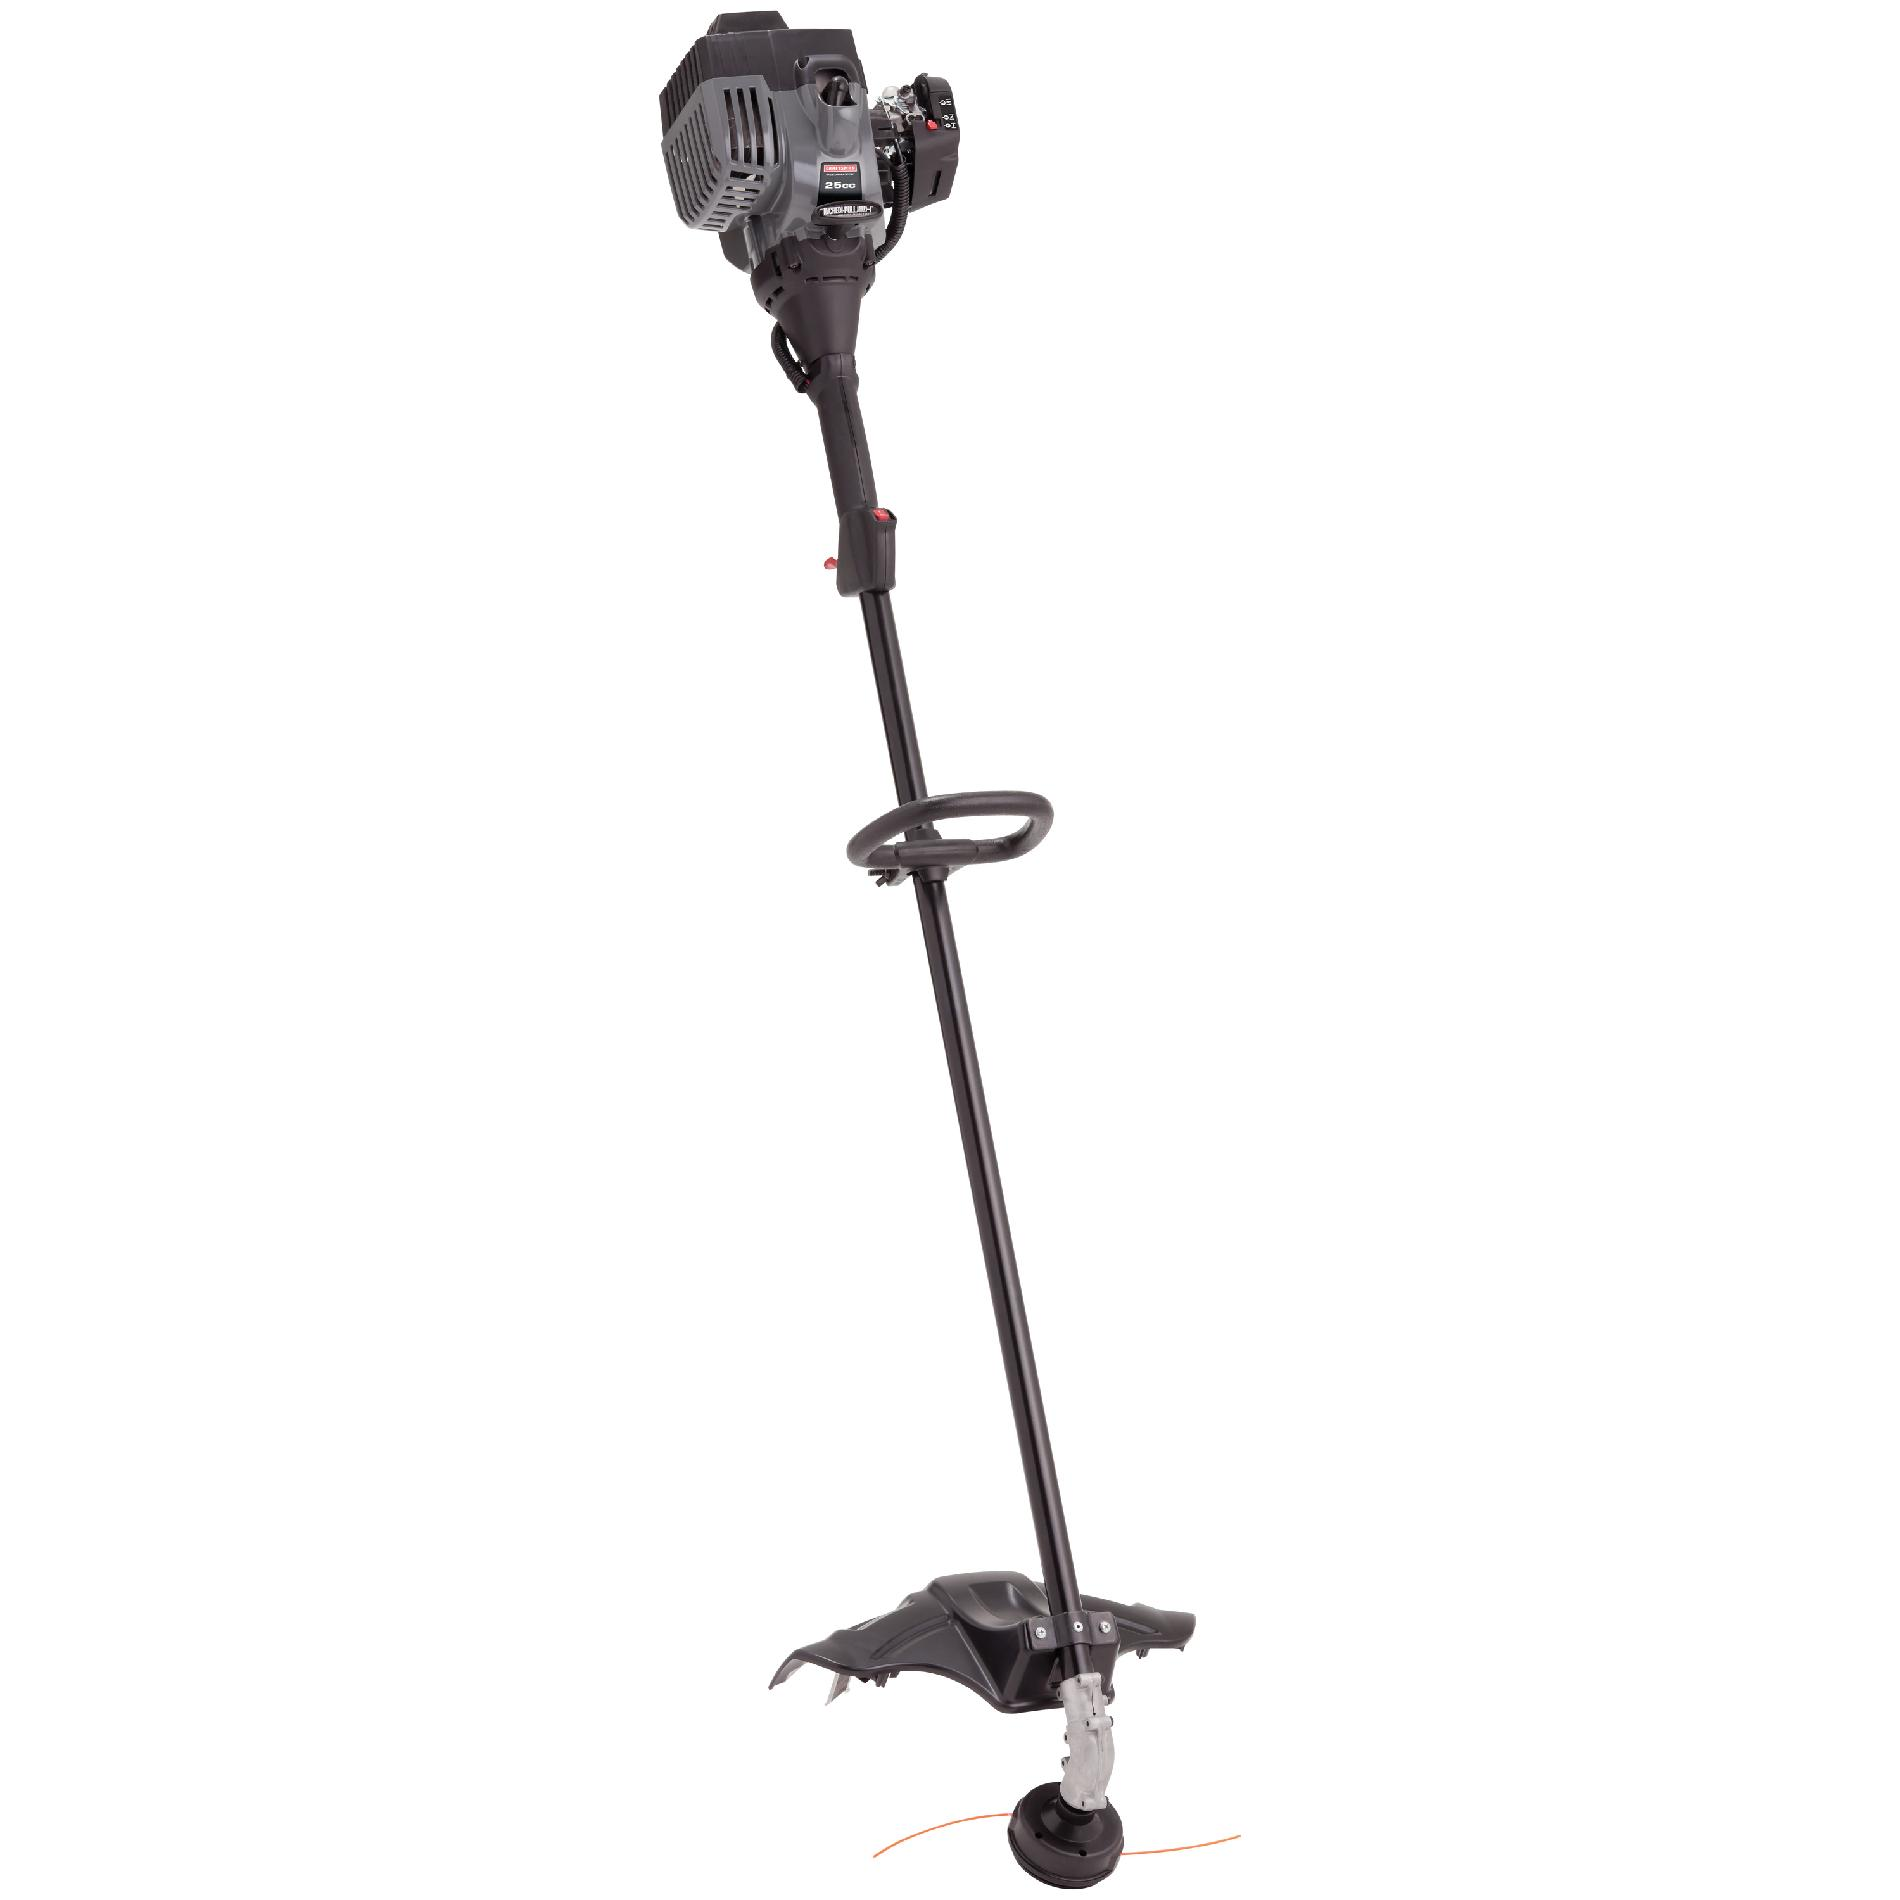 Craftsman 25cc 2-Cycle WeedWacker Gas Powered Trimmer